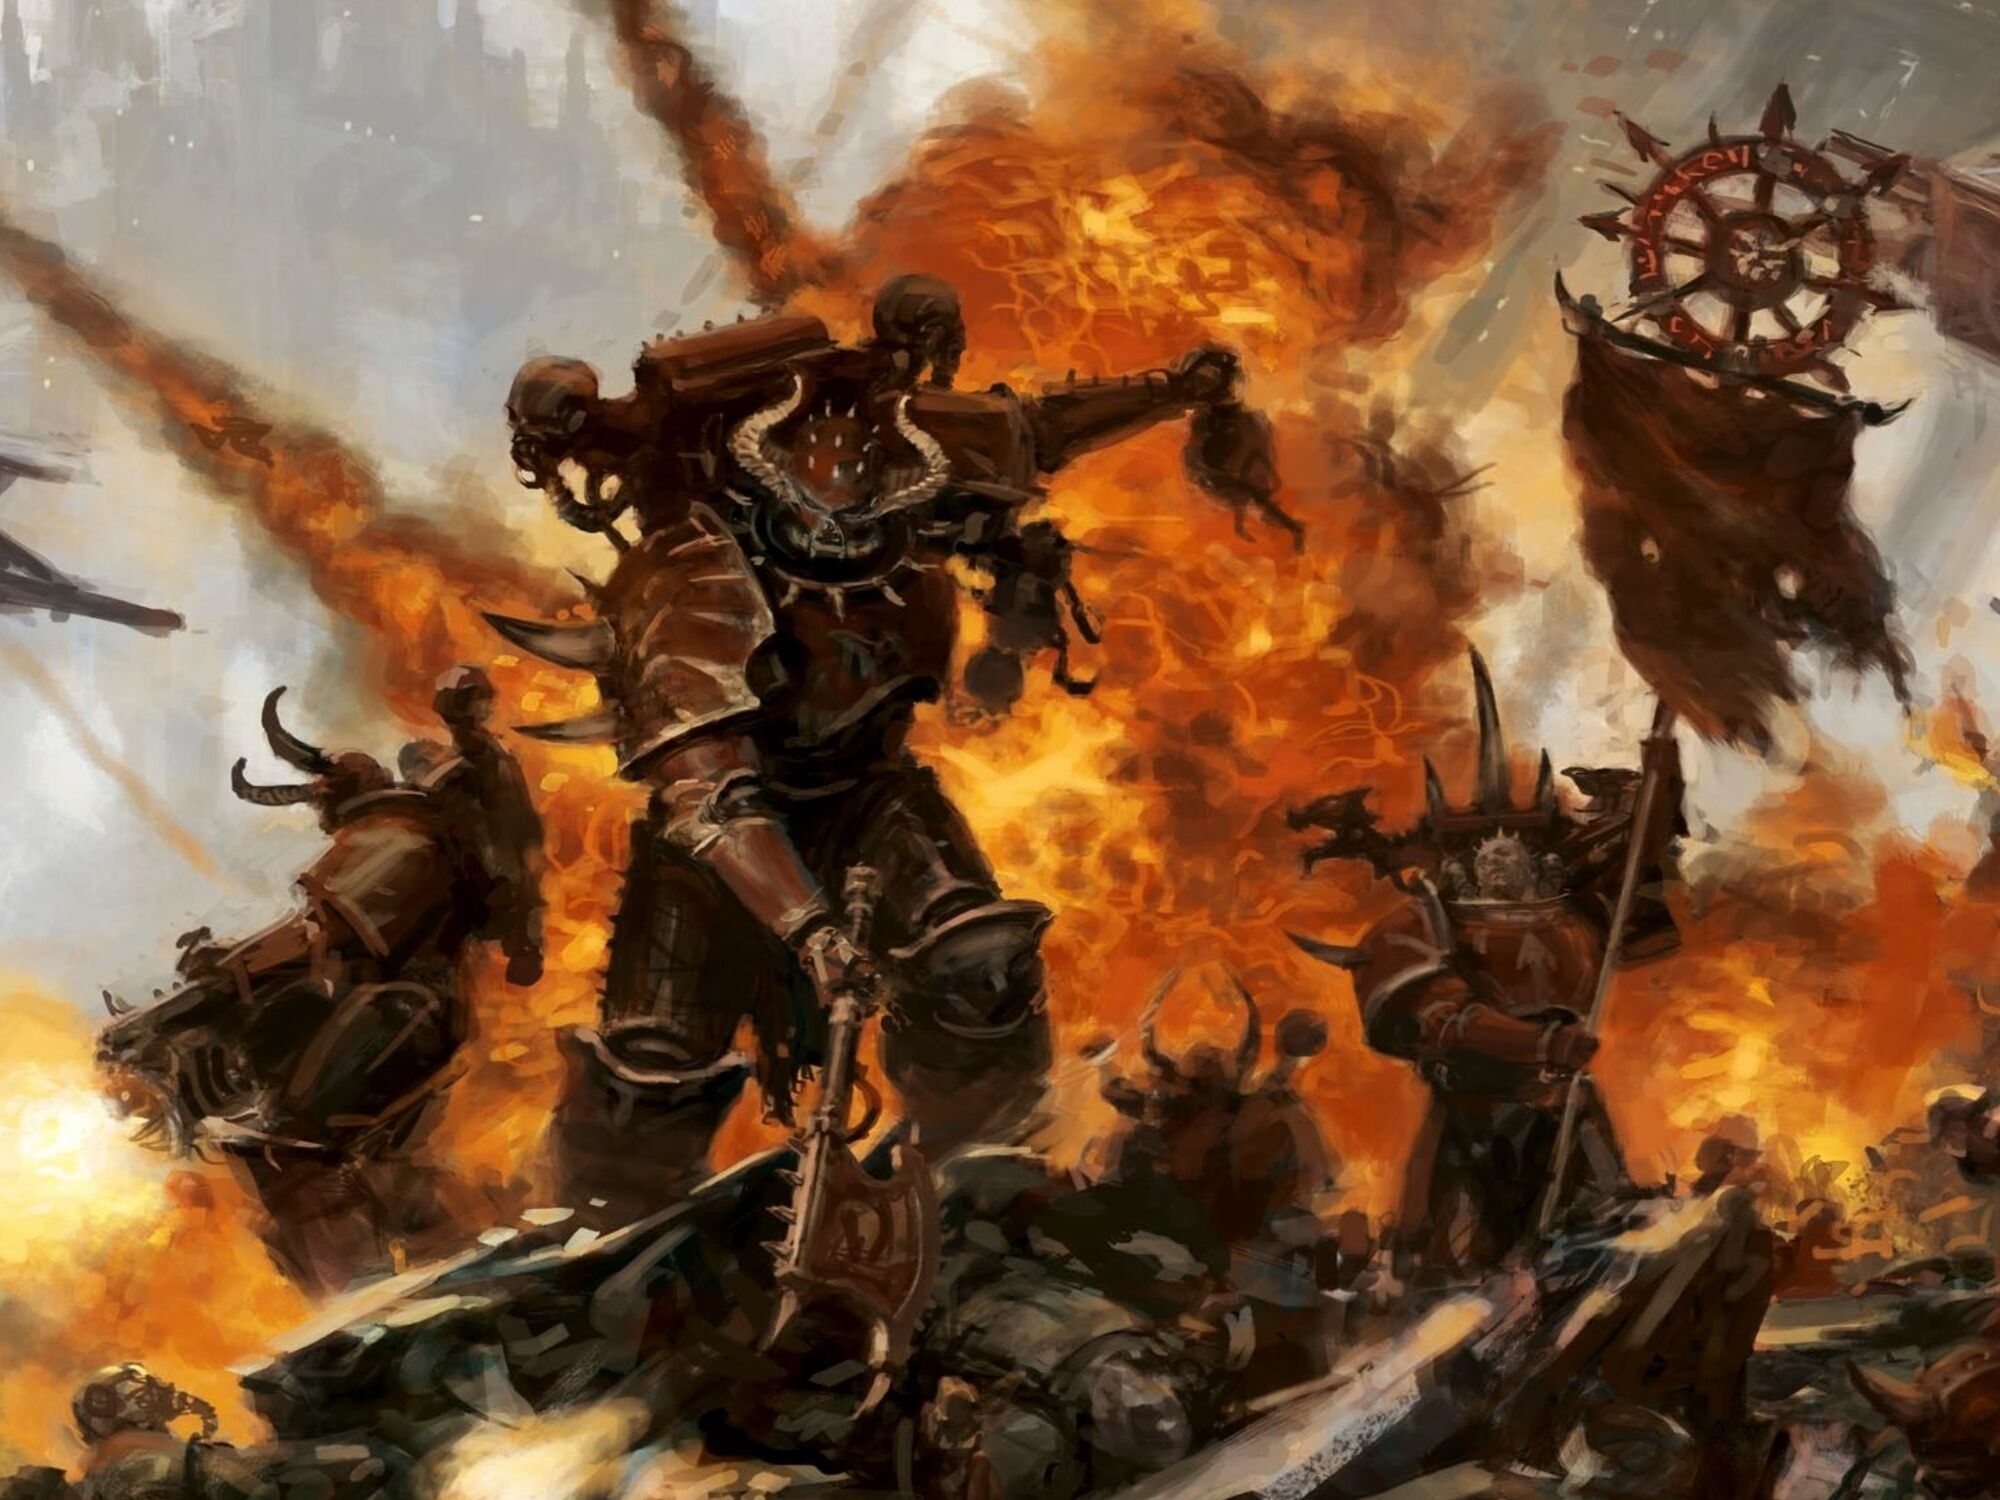 Warhammer 40,000 Homebrew Wiki:How to Create a Fanon Chaos